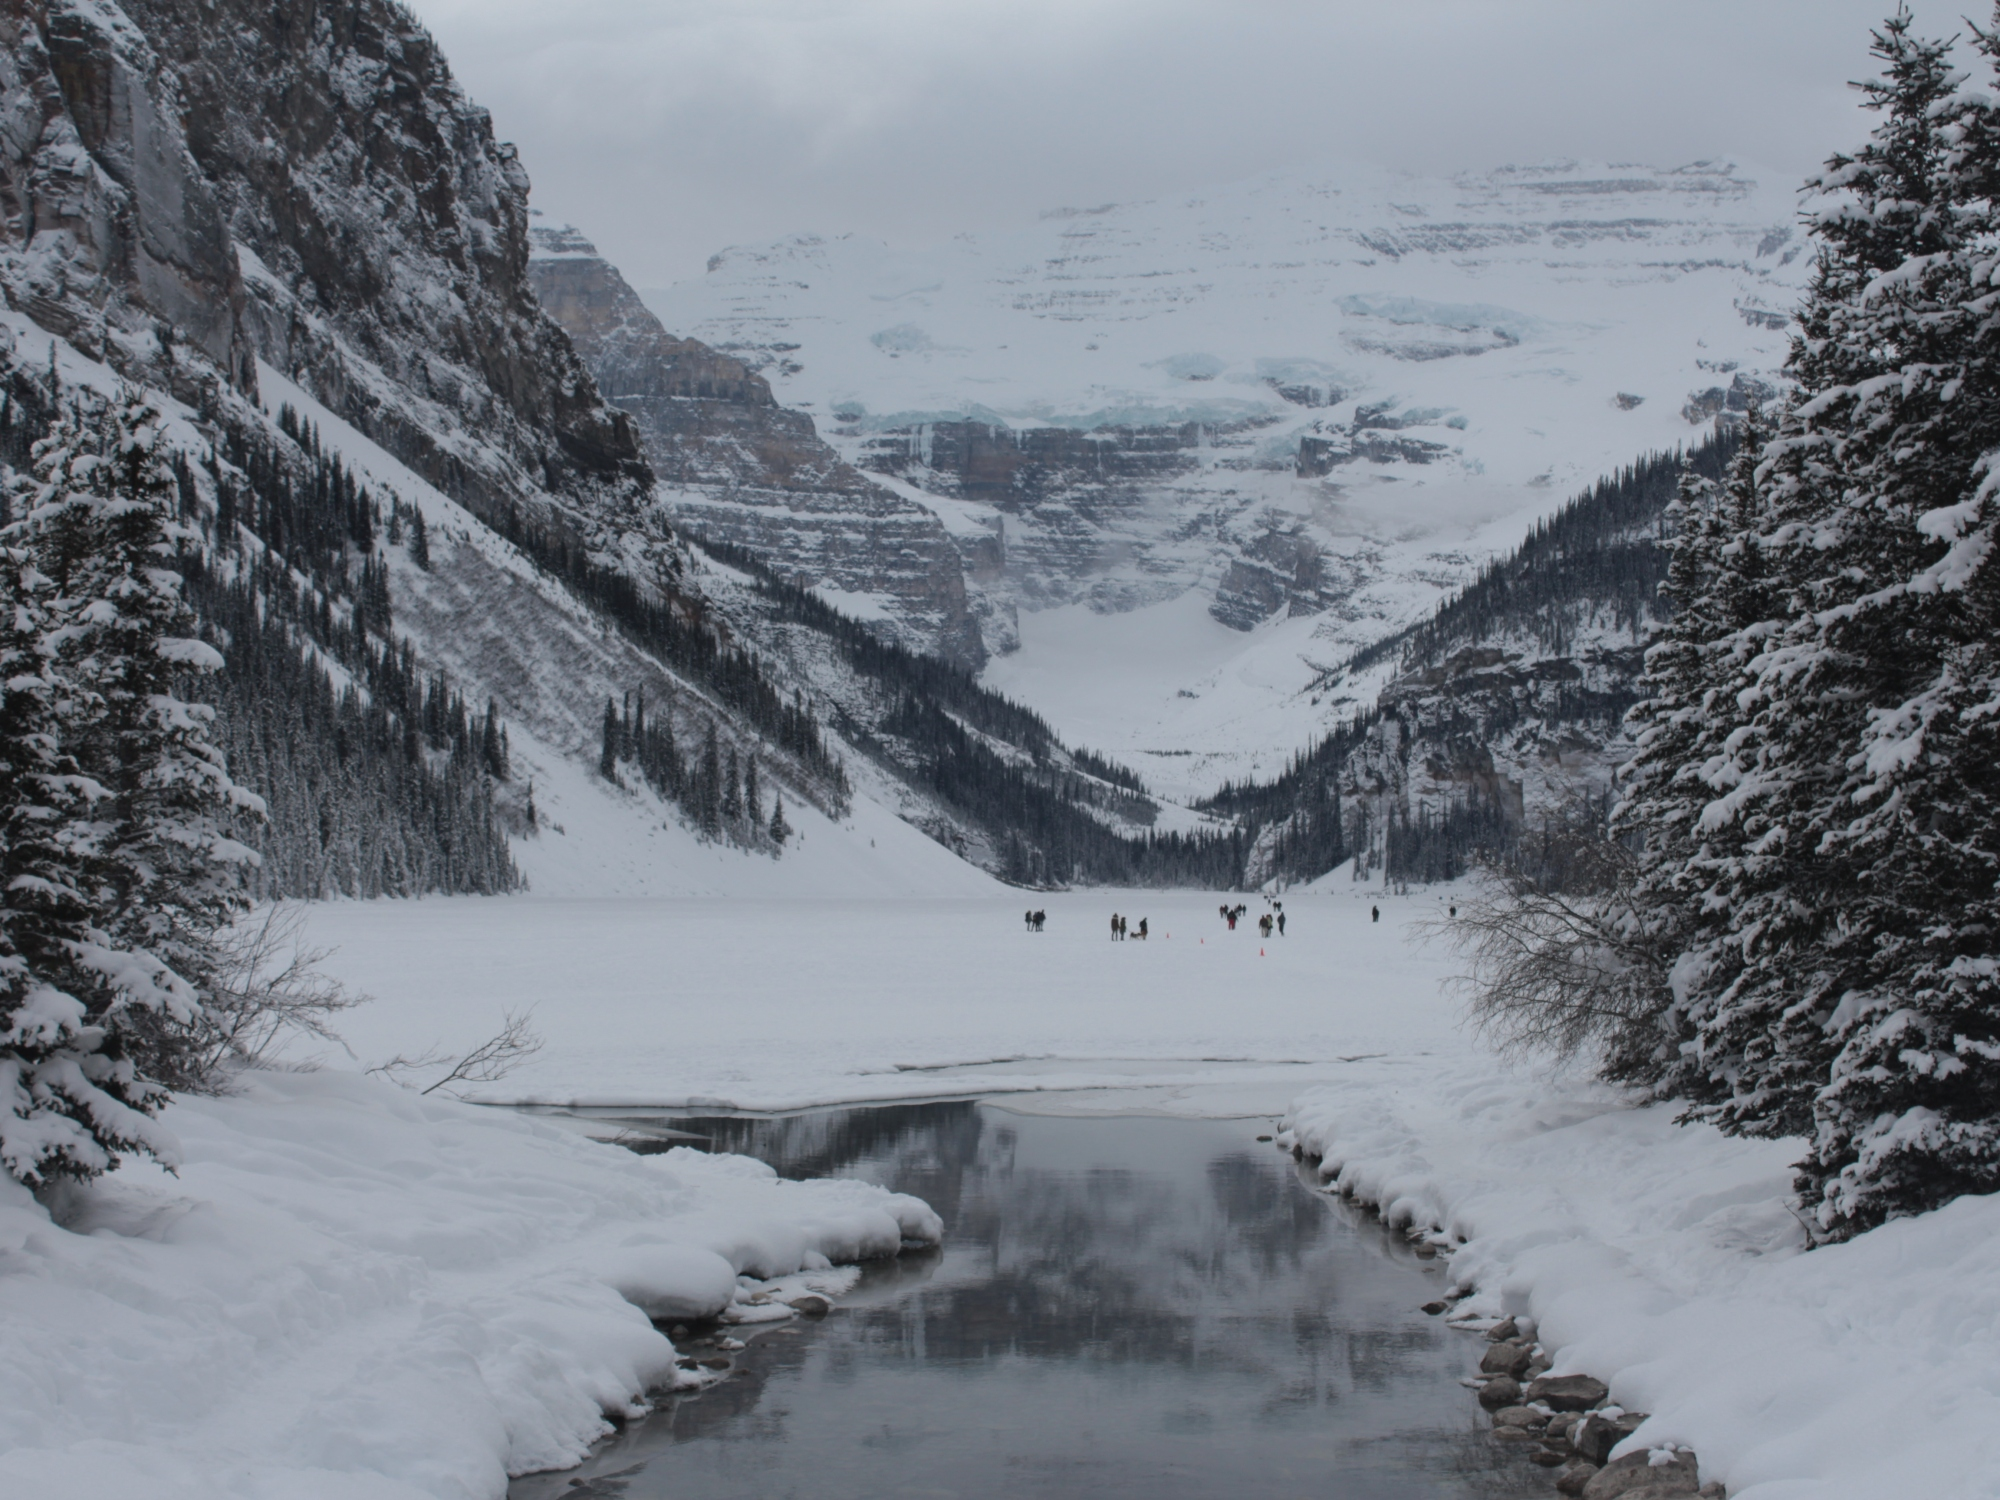 Lake Louise Winter, Banff Winter, Banff in Winter, Banff Canada Winter, Banff National Park winter, Lake Louise, Ice Magic Festival, Banff National Park